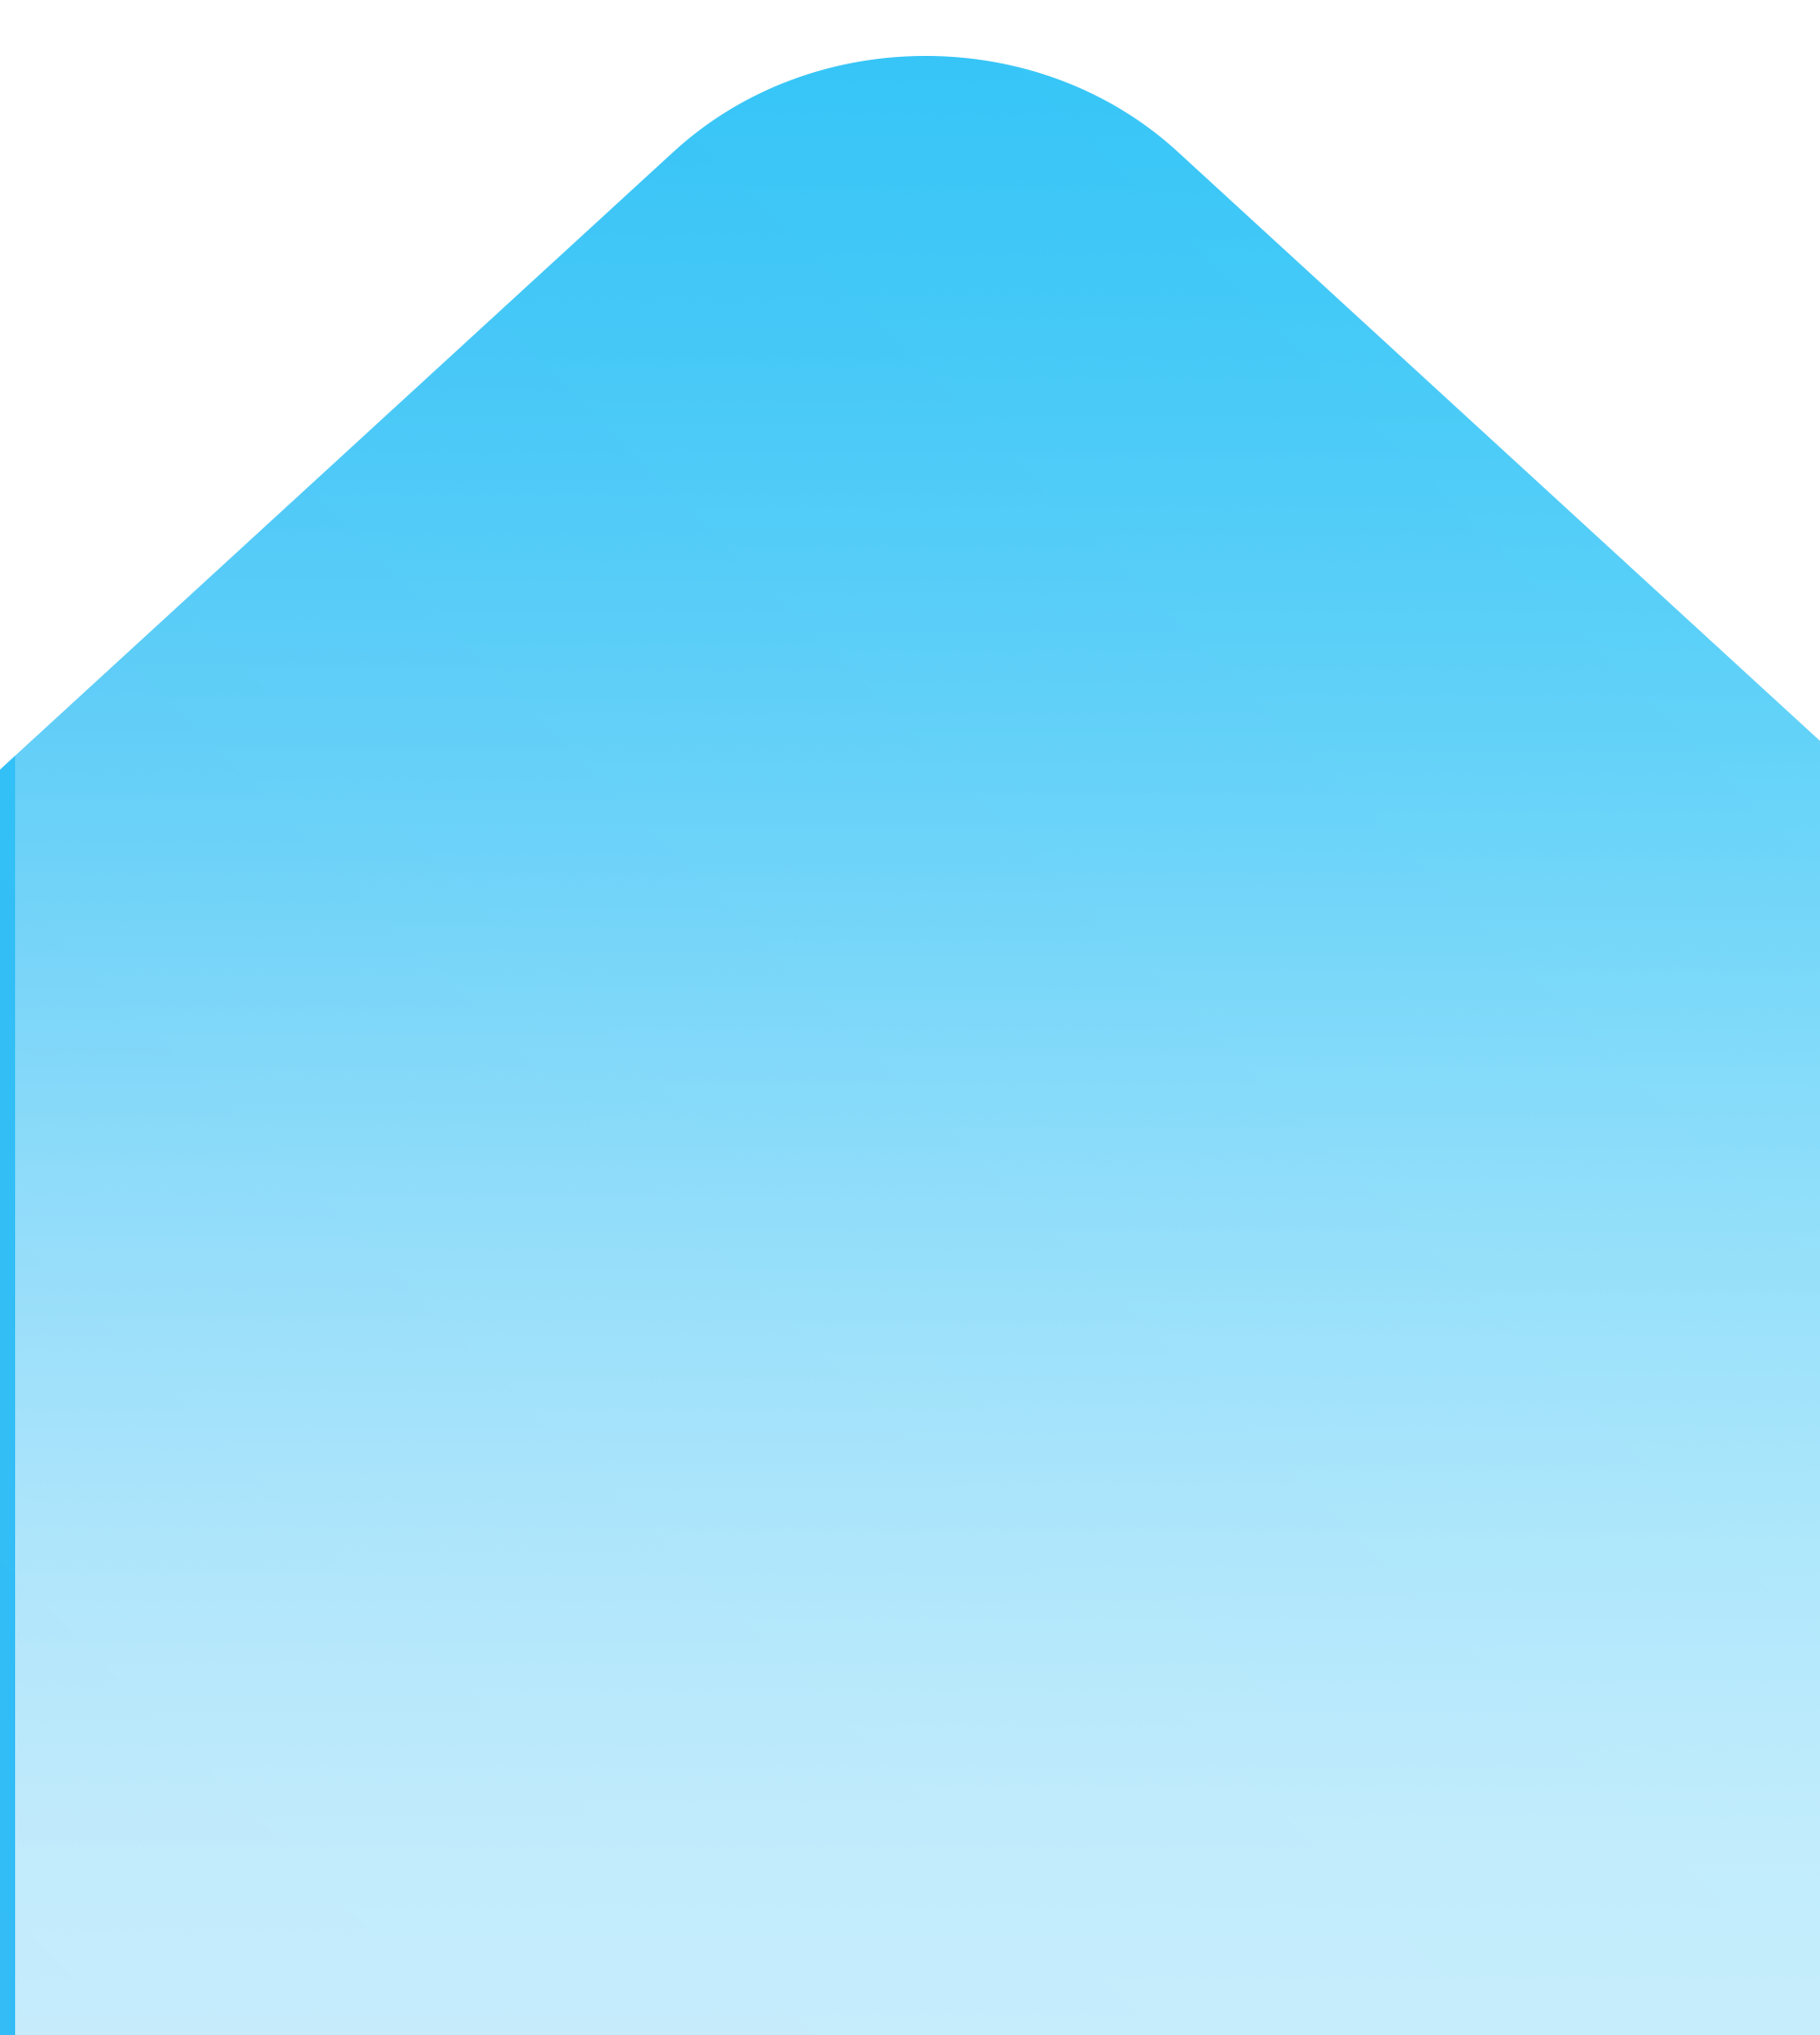 gradient_blue_background